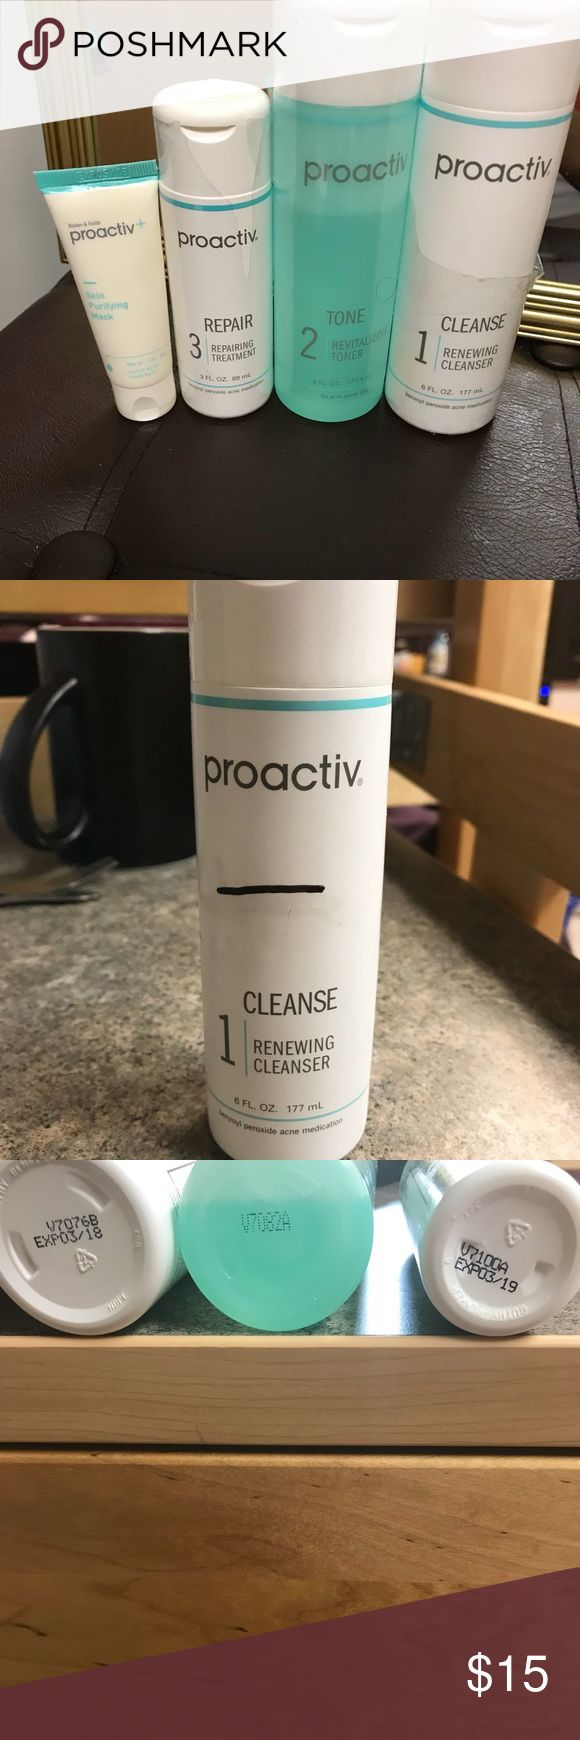 Used Proactiv kit It was a 3 month supple still has about 2 months left Bundle and save 10% with my brand new proactiv kit proactiv Other